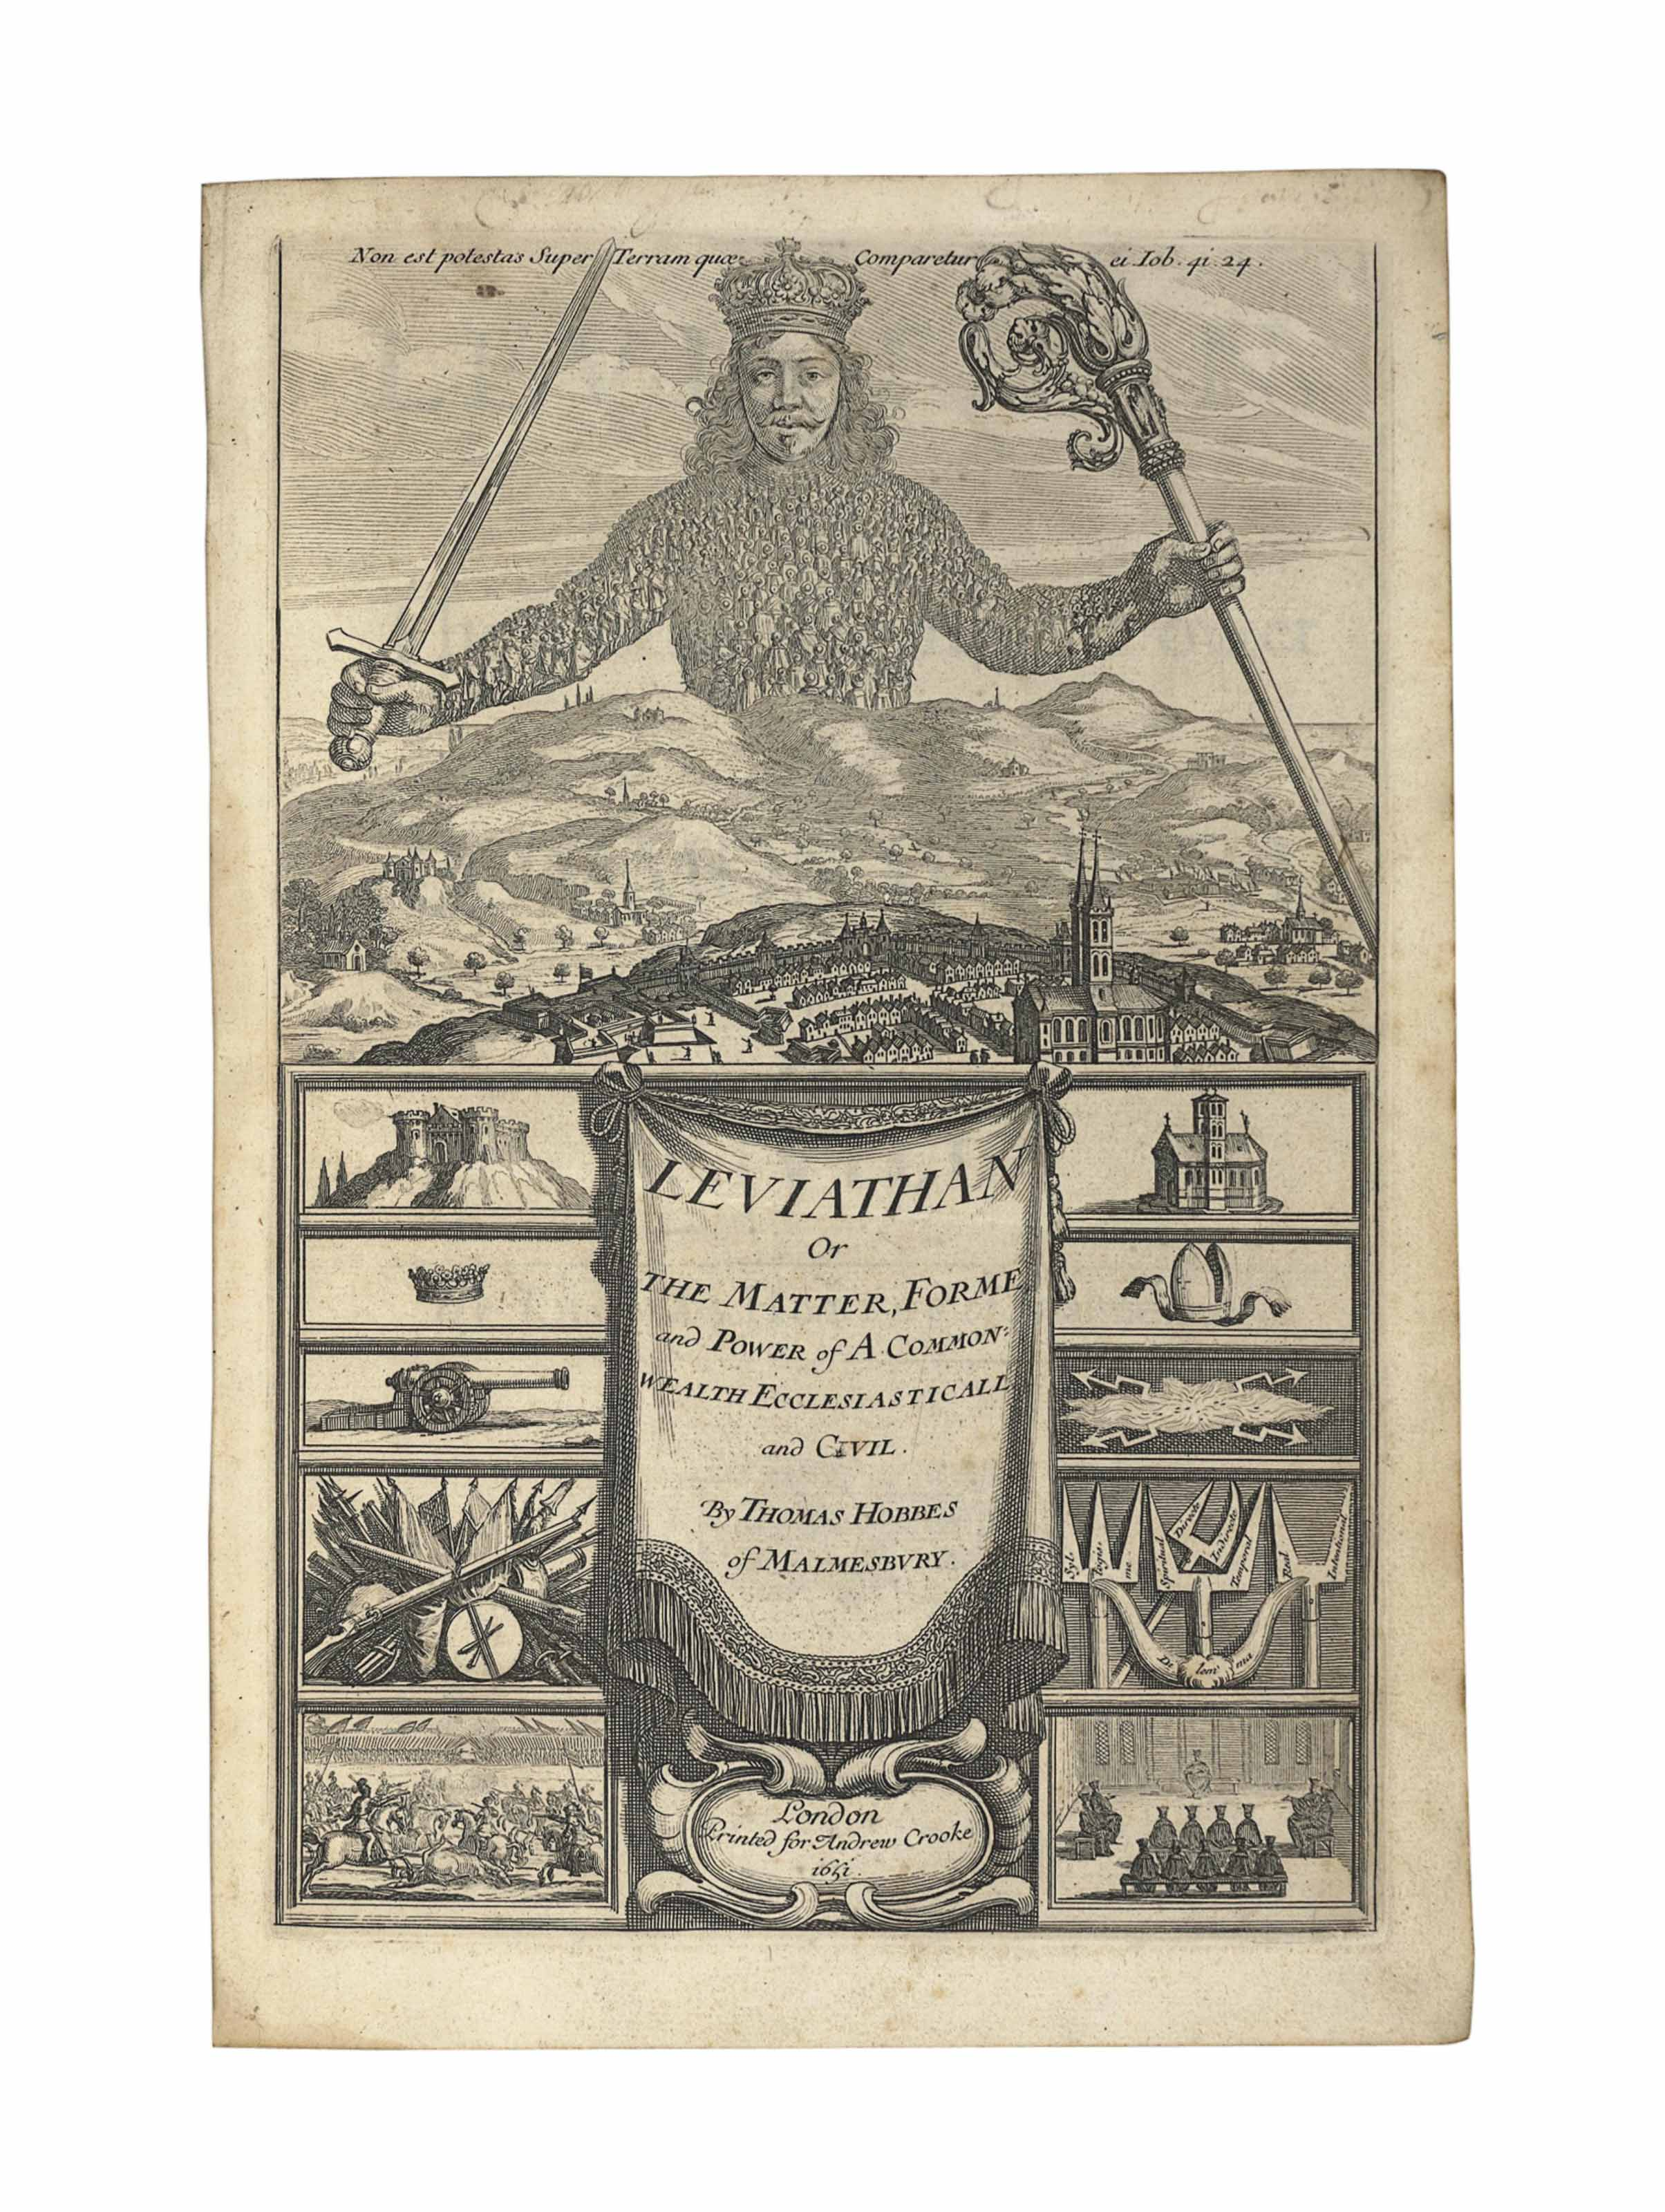 HOBBES, Thomas (1588-1679). Leviathan, or the Matter, Forme, and Power of a Common-Wealth Ecclesiasticall and Civill. London: Andrew Crooke, 1651. 2° (269 x 180mm). Engraved frontispiece, folding letterpress table. (Light spotting.) Contemporary sprinkled calf, sides panelled in gilt, edges sprinkled red (rebacked, corners rubbed). Provenance: a contemporary reader (deleted title inscription, neat marginalia) -- W.R. Sorley (signature on front endpaper).